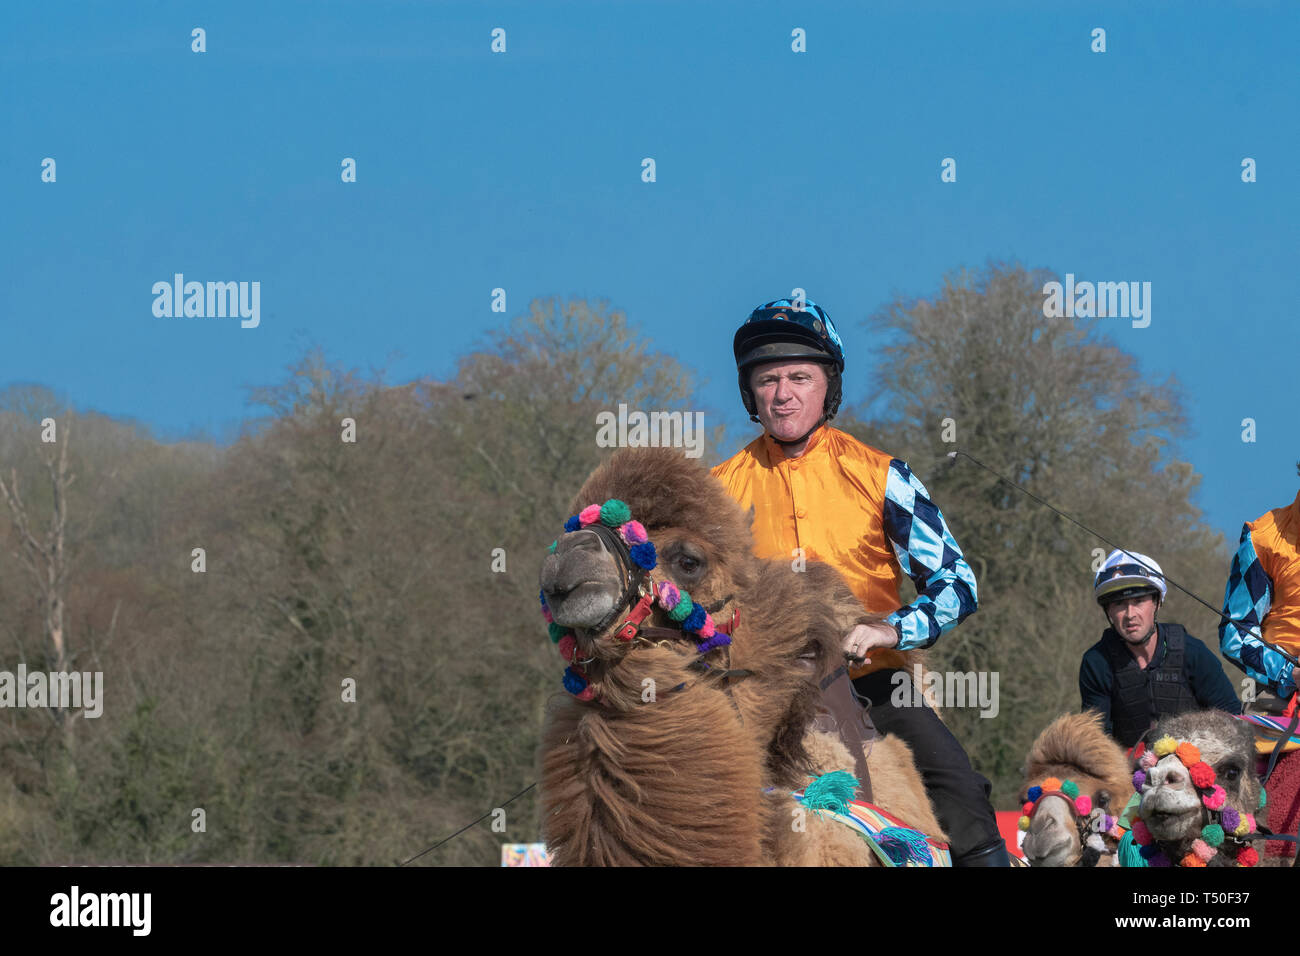 Hungerford, West Berkshire, UK. 19th Apr 2019. Melbourne 10 Racing Camel Racing in the main area thrilling the crowds with AP McCoy (Sir Anthony Peter McCoy OBE, commonly known as AP McCoy ) former champion horse racing jockey taking the the lead and onto win the race over famous horse race trainer Jamie Osborne and Nico de Boinville racing jockey who competes in National Hunt racing. Credit: Gary Blake/Alamy Live News Stock Photo